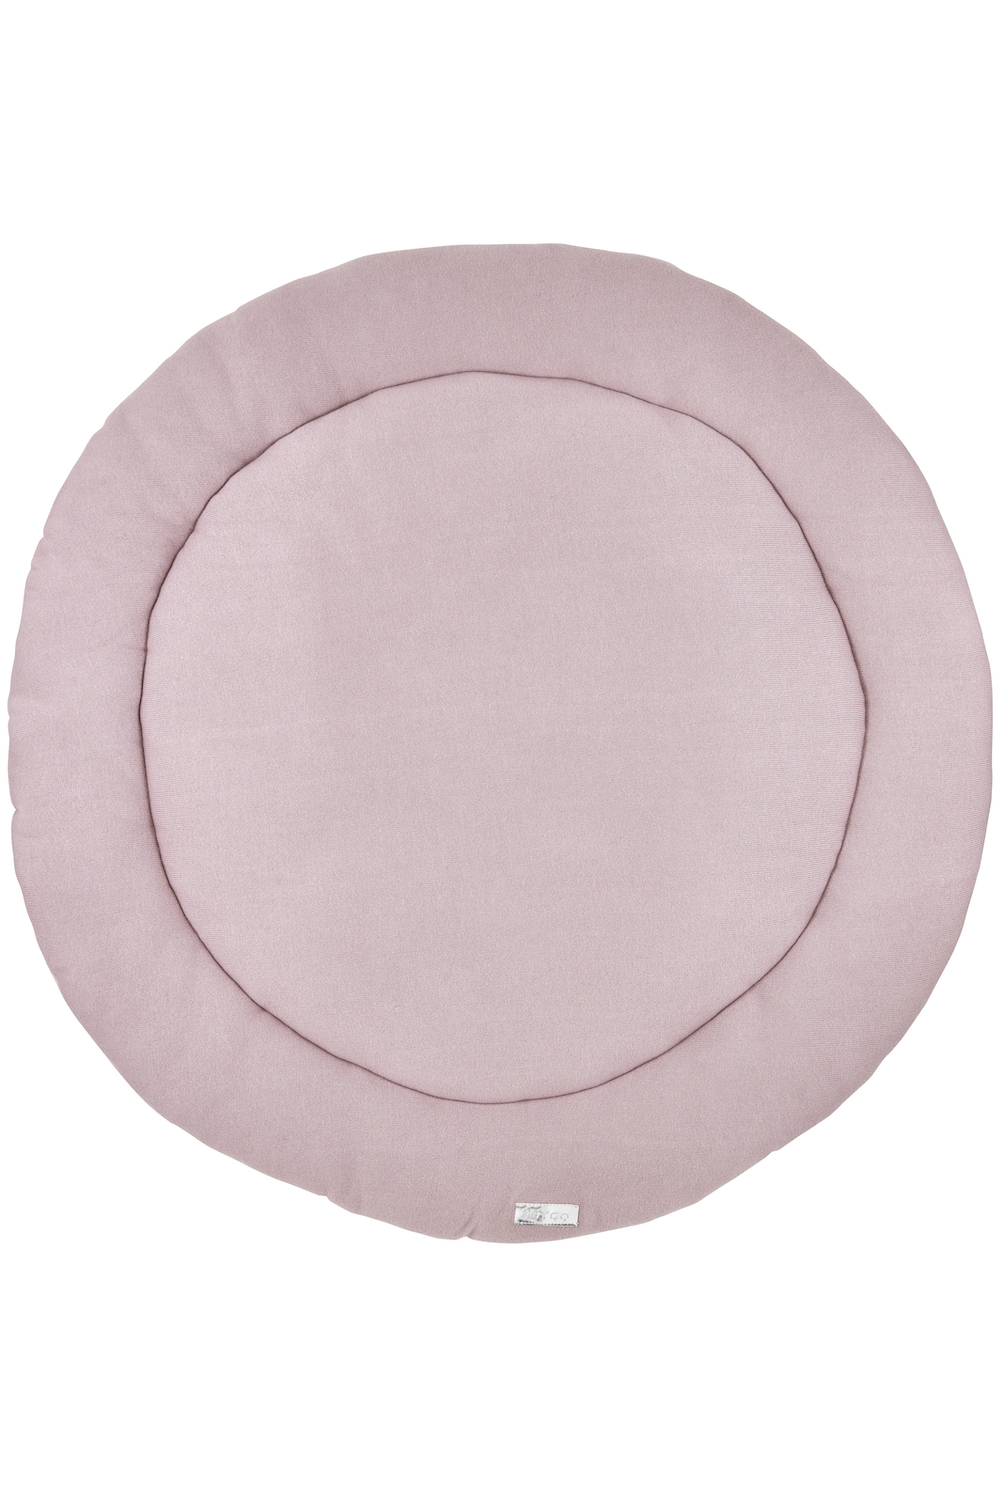 Boxkleed Rond Knit Basic - Lilac - 95cm